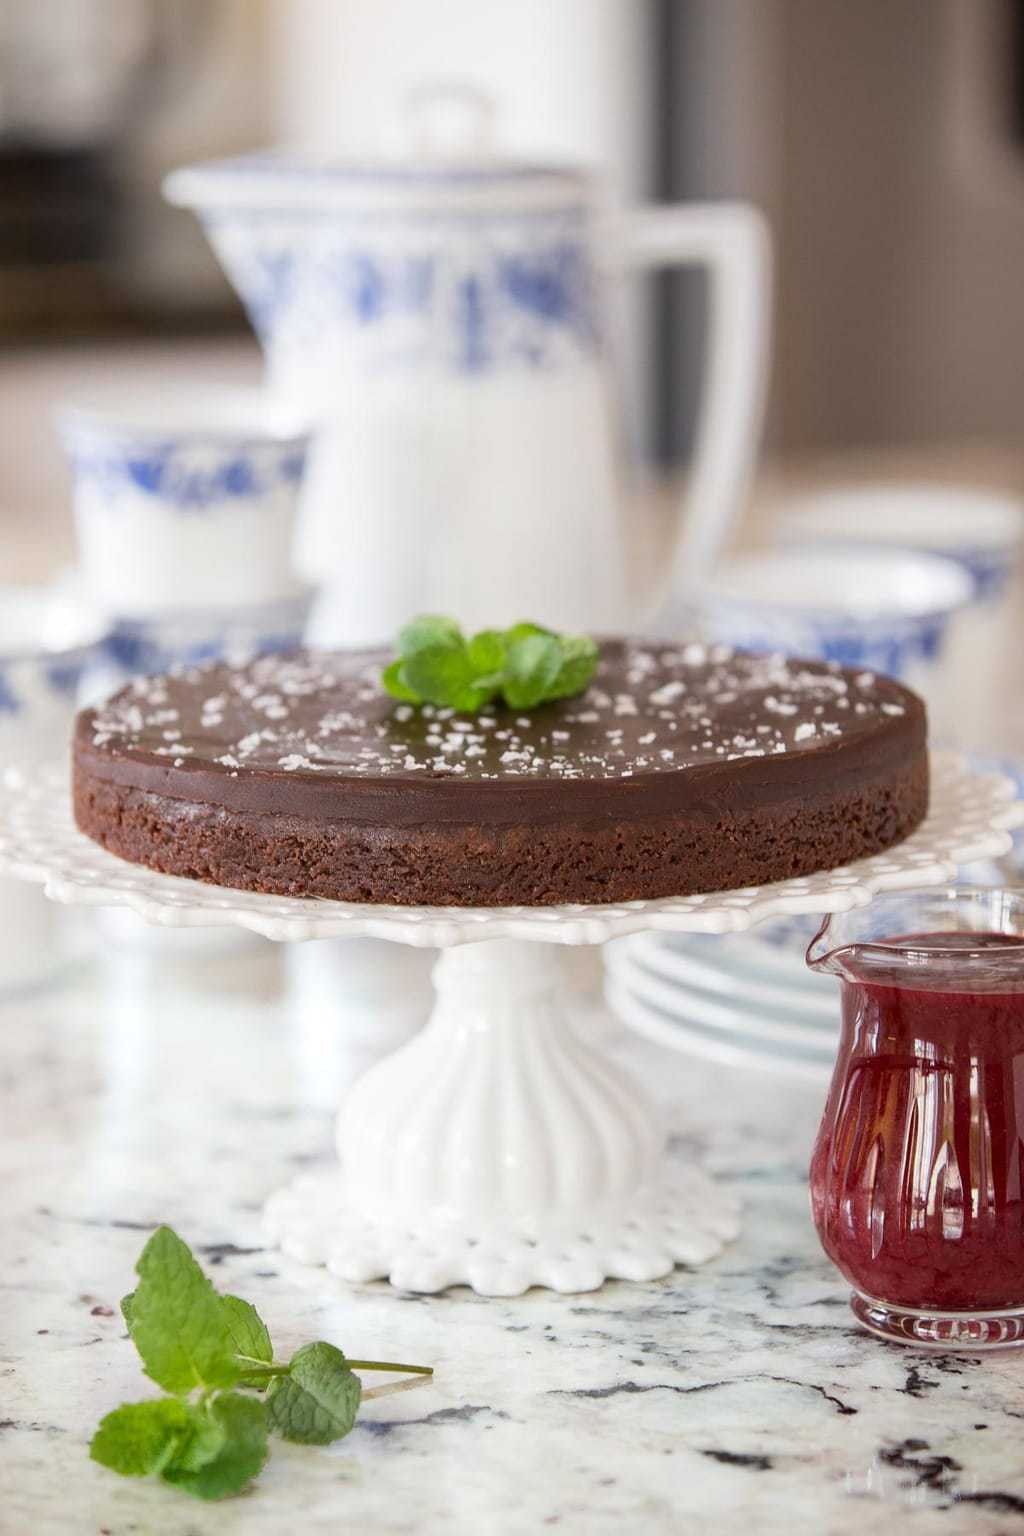 Photo of a Swedish Chocolate Sticky Cake on a white cake stand on a granite countertop with a blue and white serving set in the background.